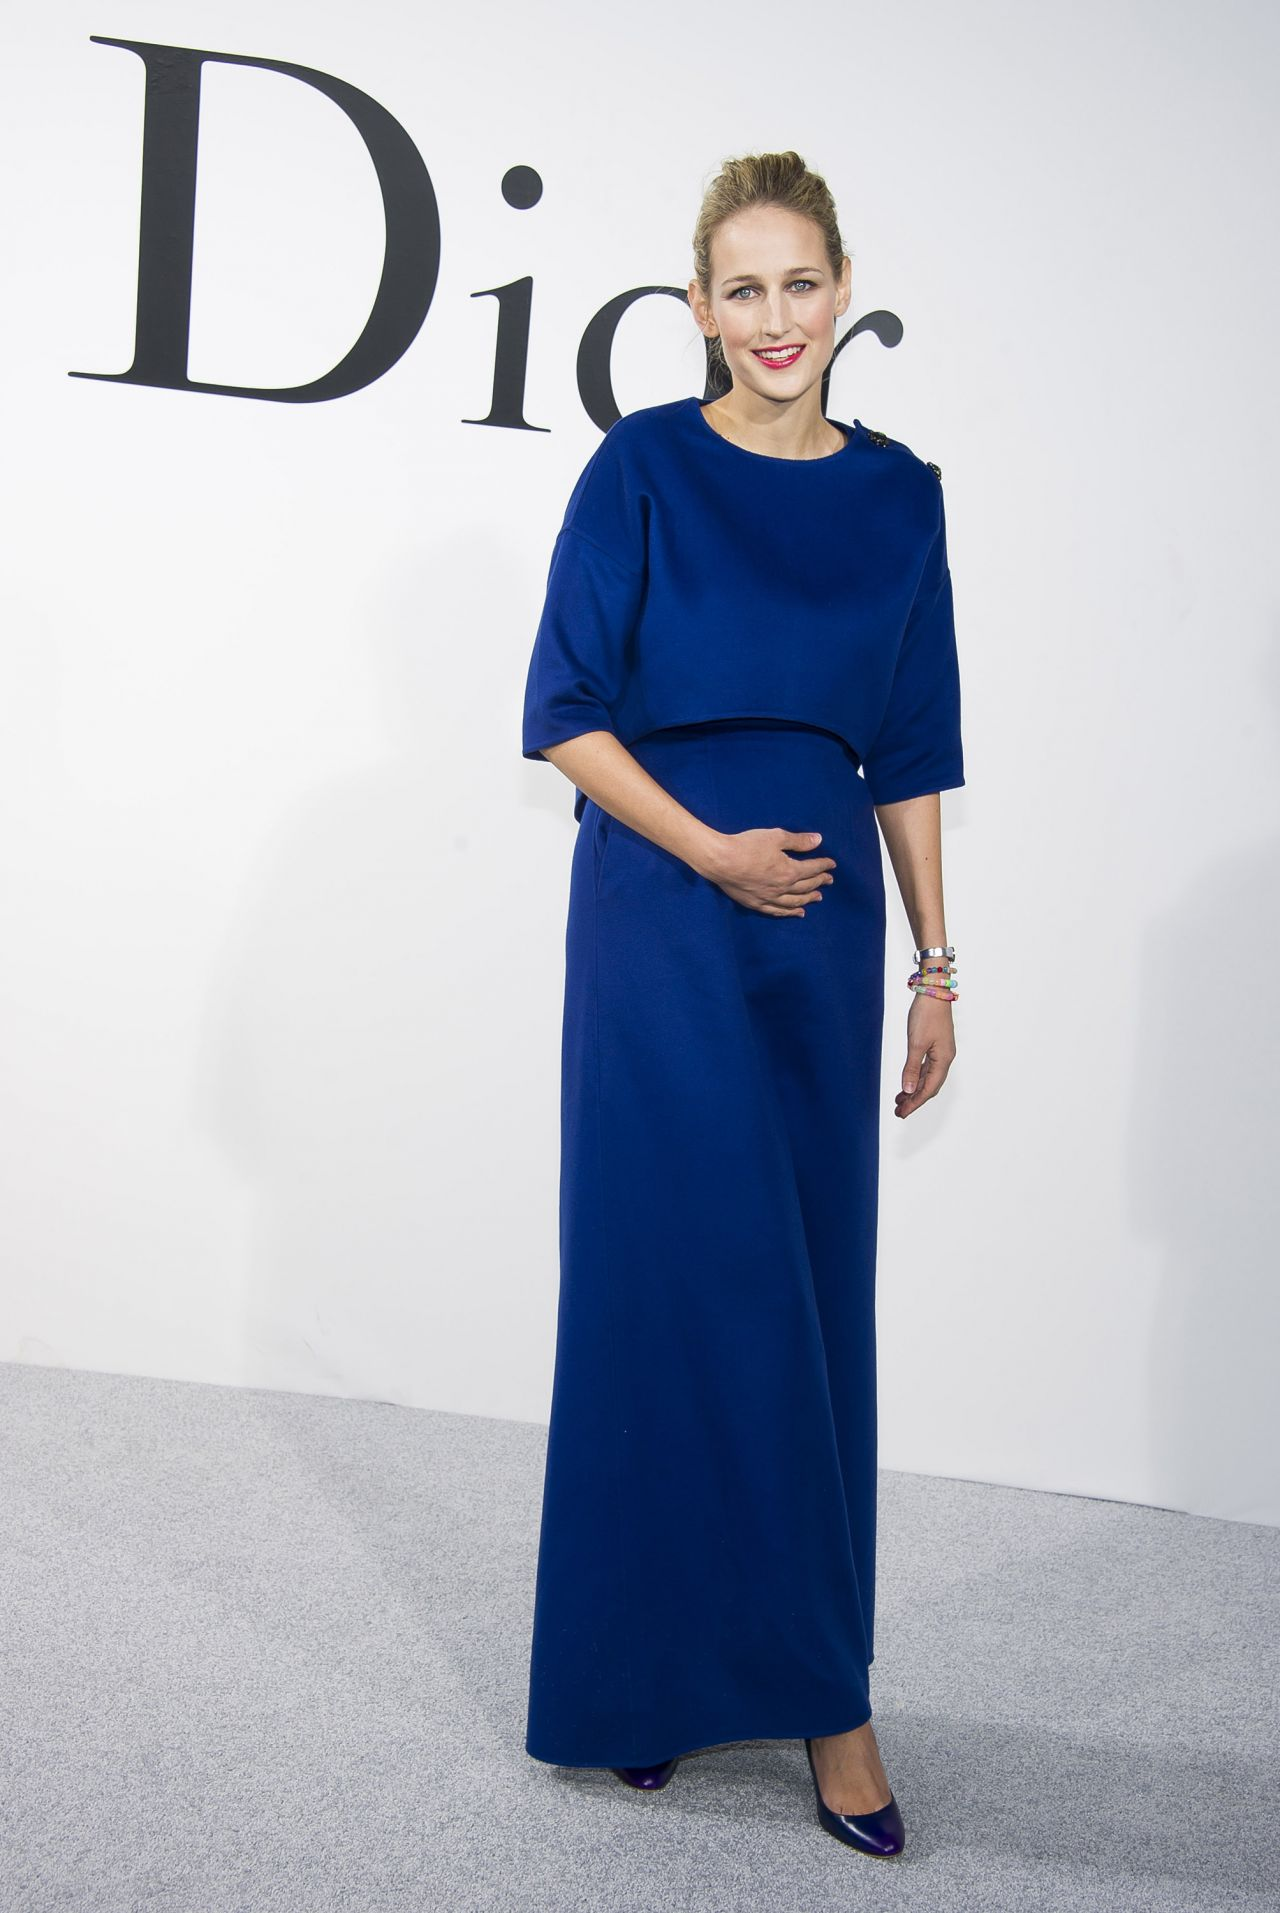 Leelee Sobieski - Dior Cruise 2015 Fashion Show - May 2014